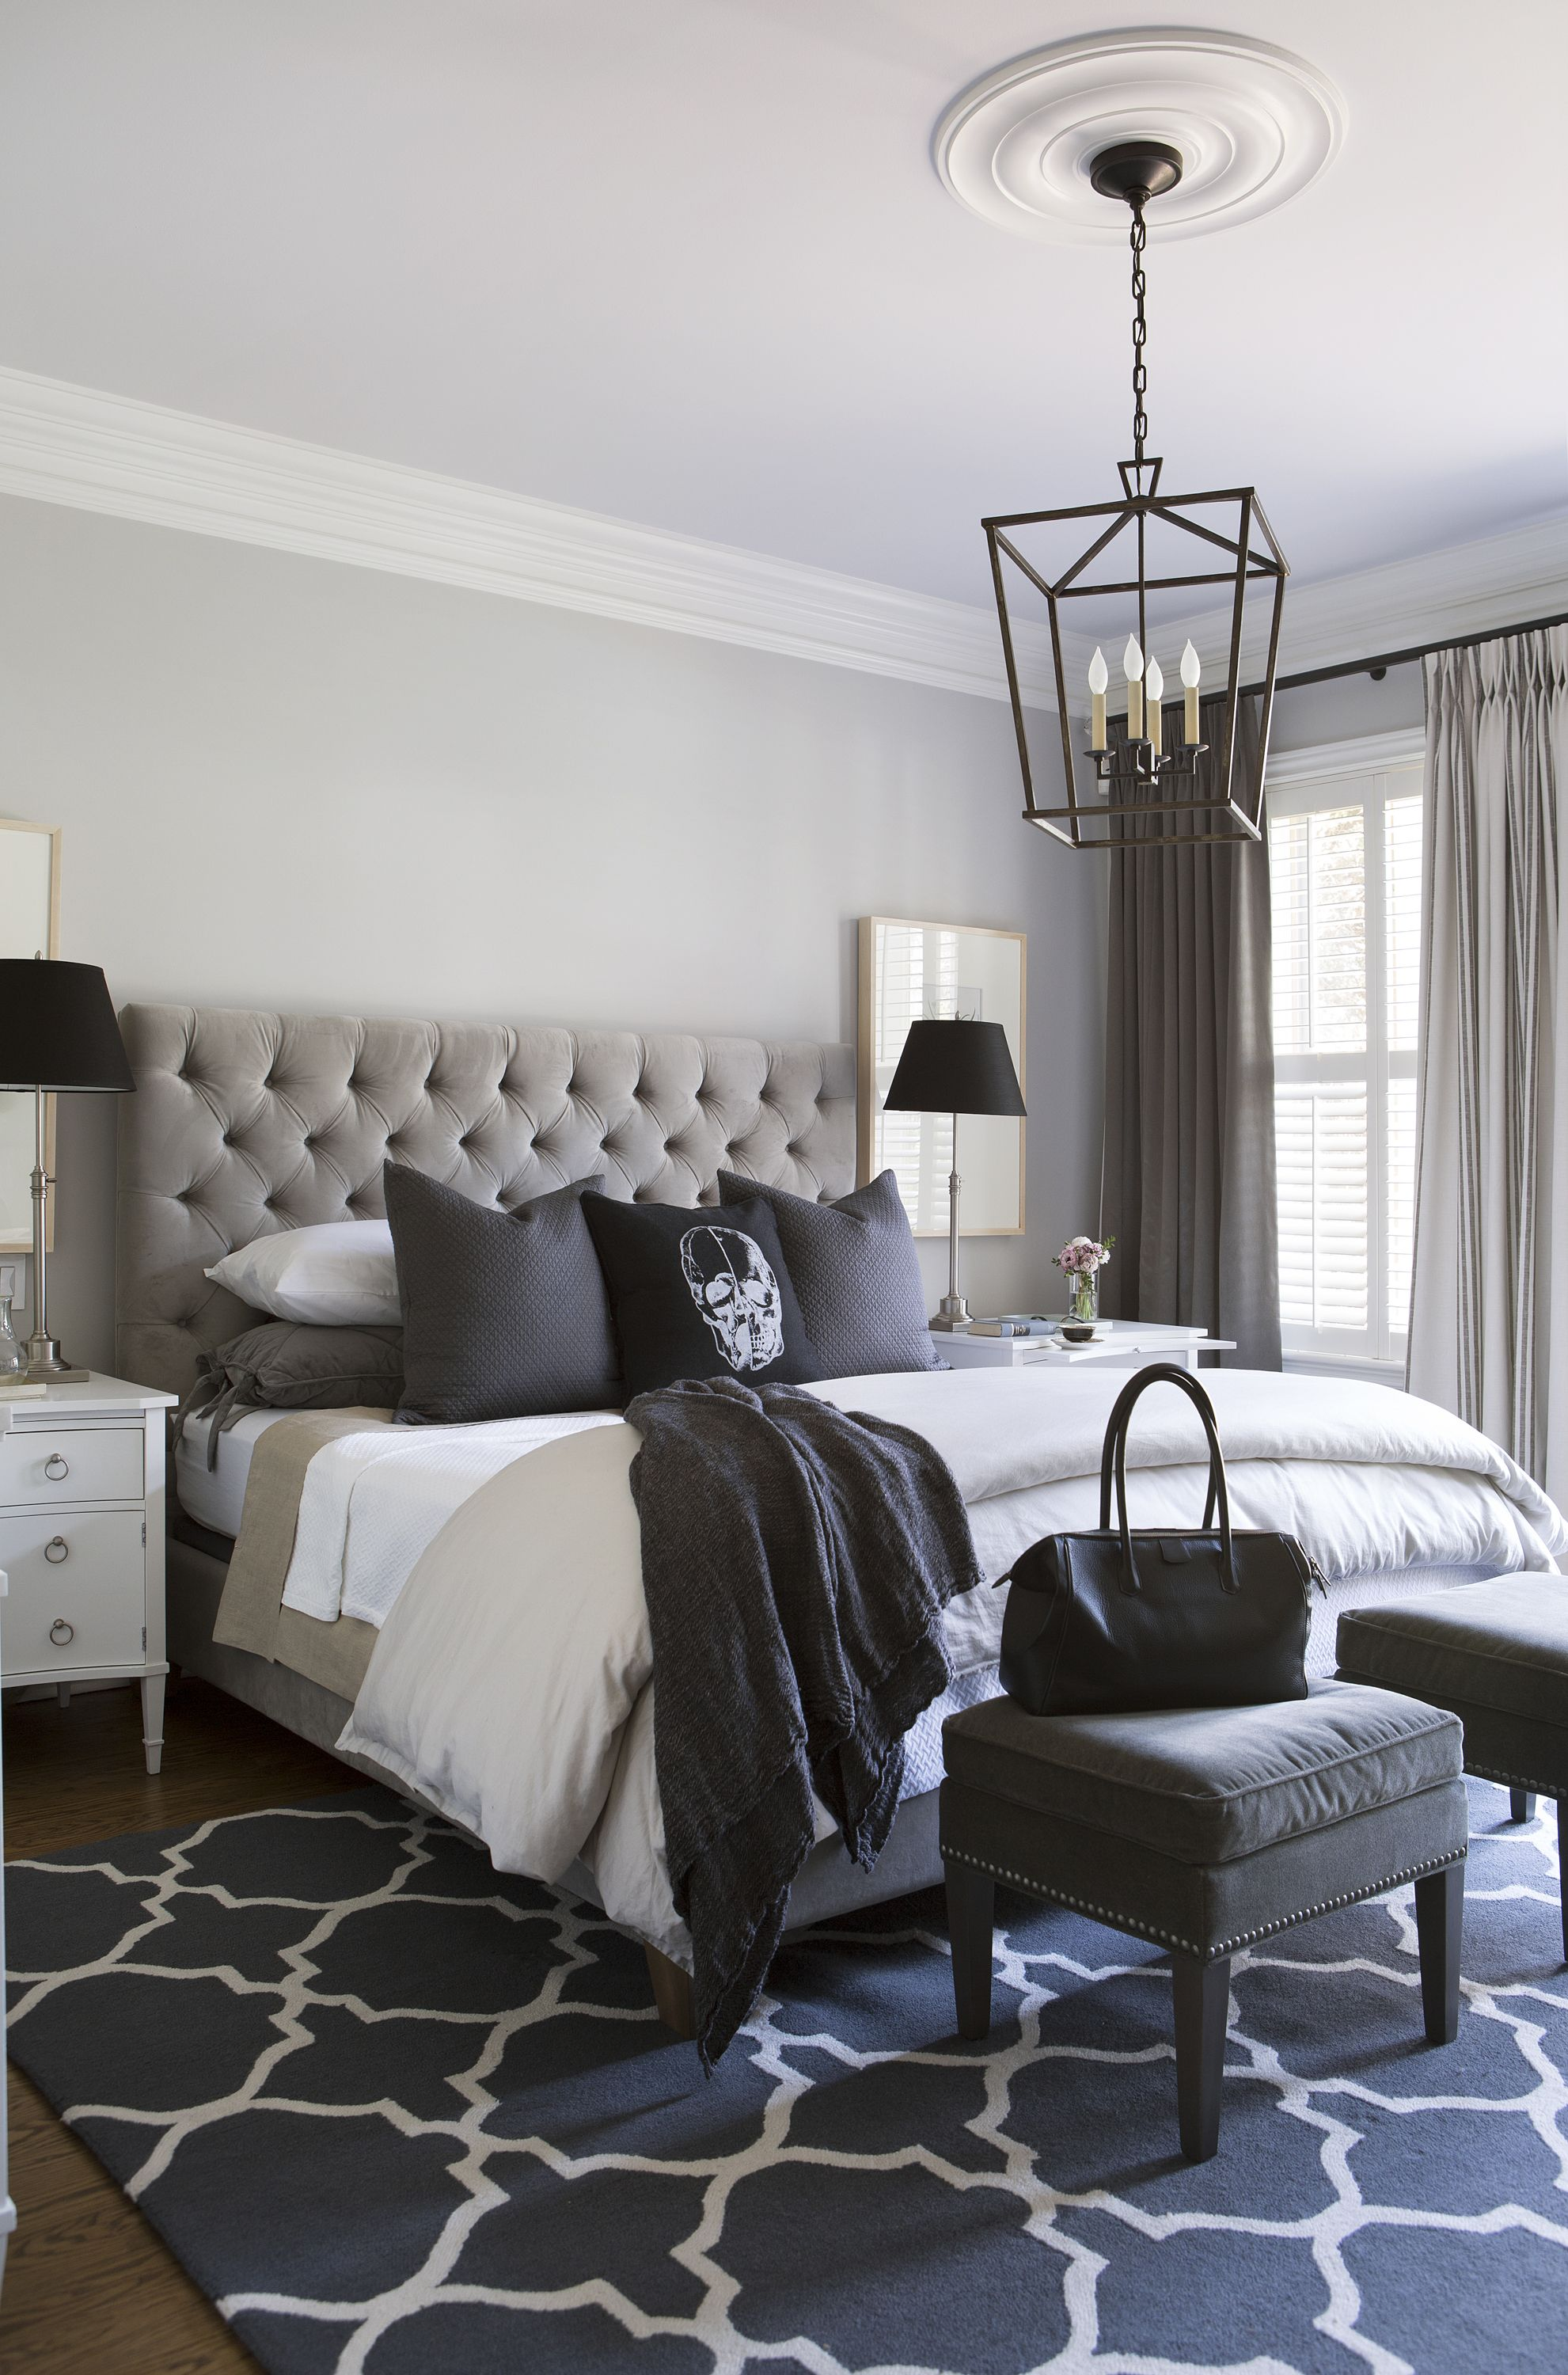 Master Bedroom In Greys And Lavender With Skull Cushion. Jean Stephane  Beauchamp Design. Photo